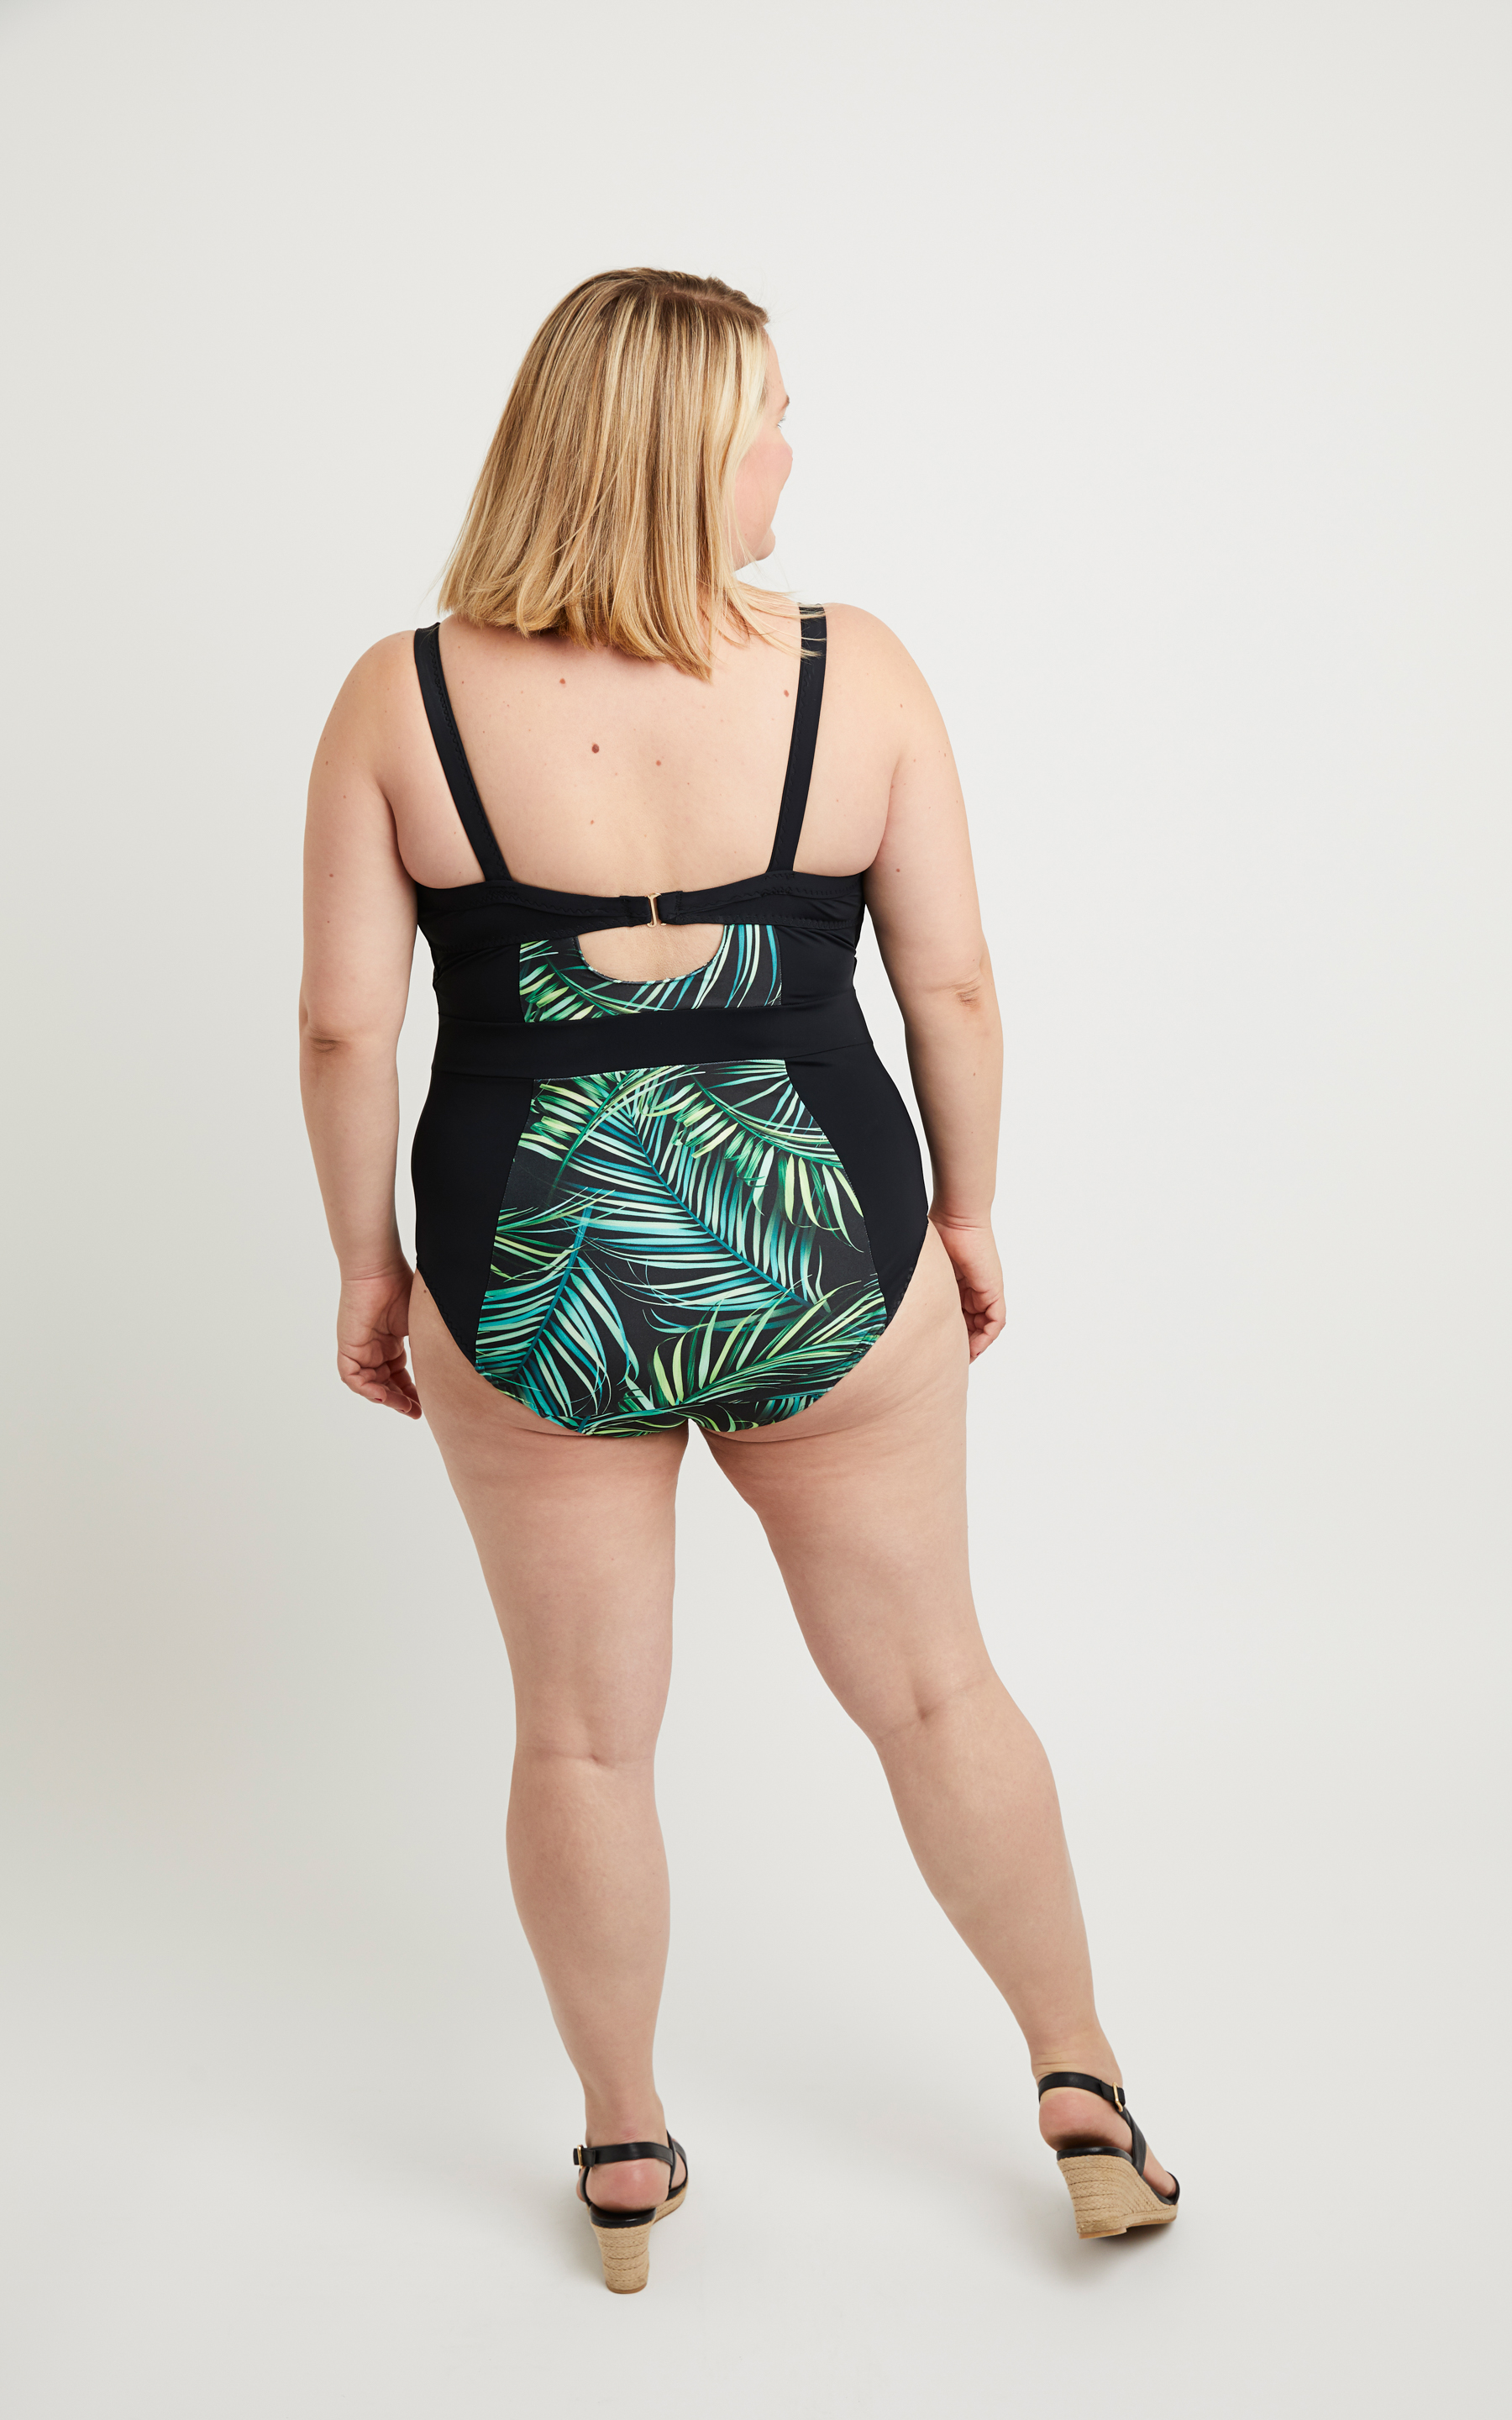 Cashmerette Ipswich swimsuit sewing pattern